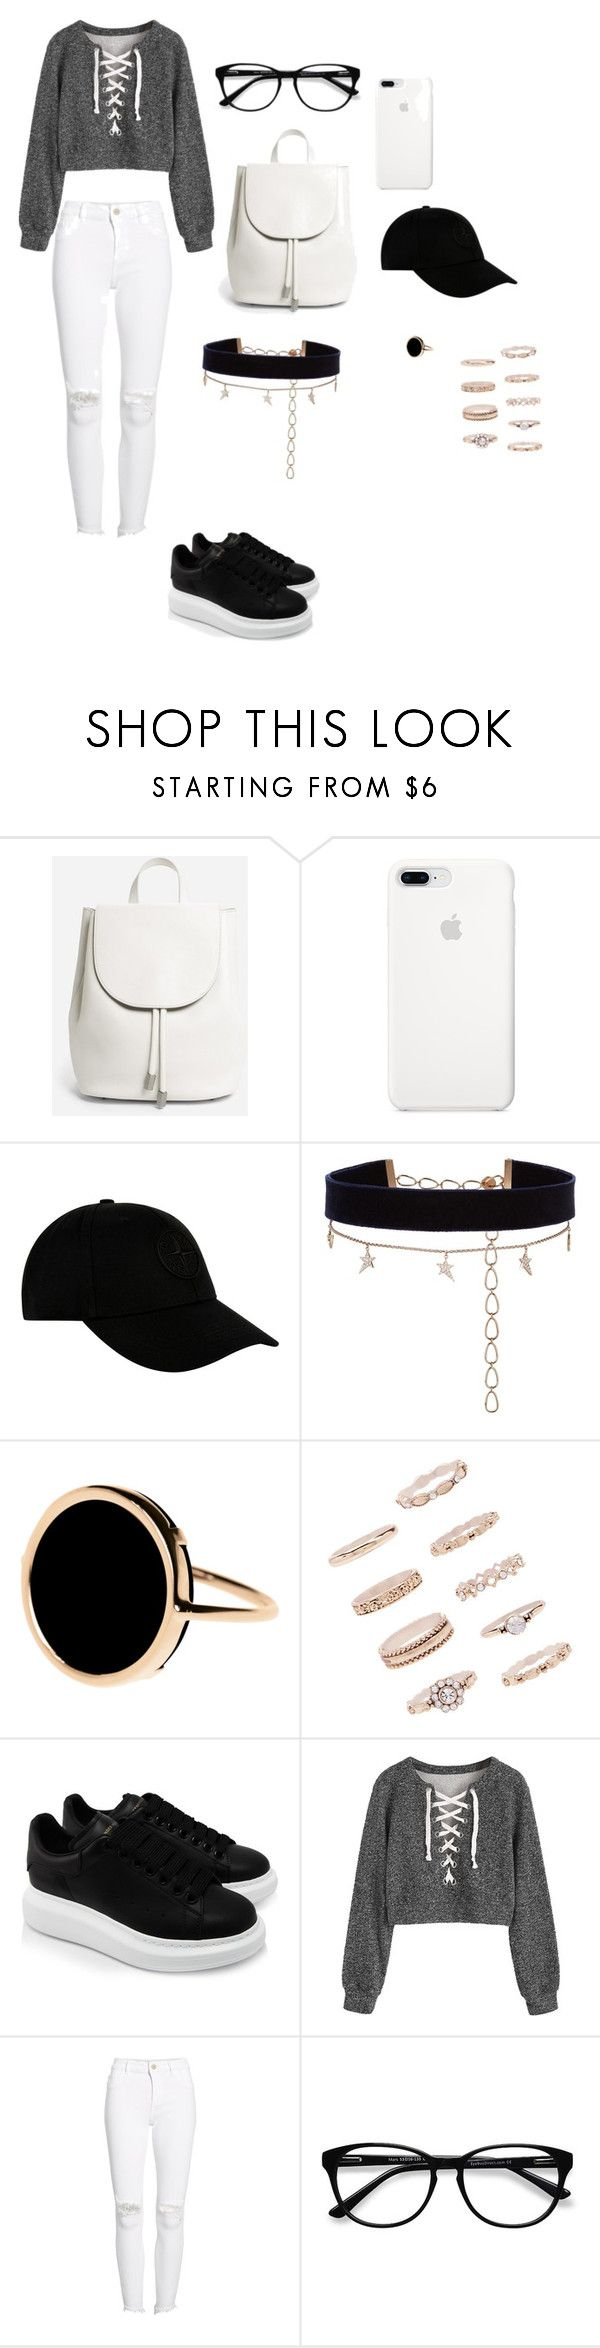 """""""Casual day outfit"""" by nanamakk ❤ liked on Polyvore featuring Everlane, STONE ISLAND, Diane Kordas, Ginette NY, Forever 21, Alexander McQueen, DL1961 Premium Denim and EyeBuyDirect.com"""